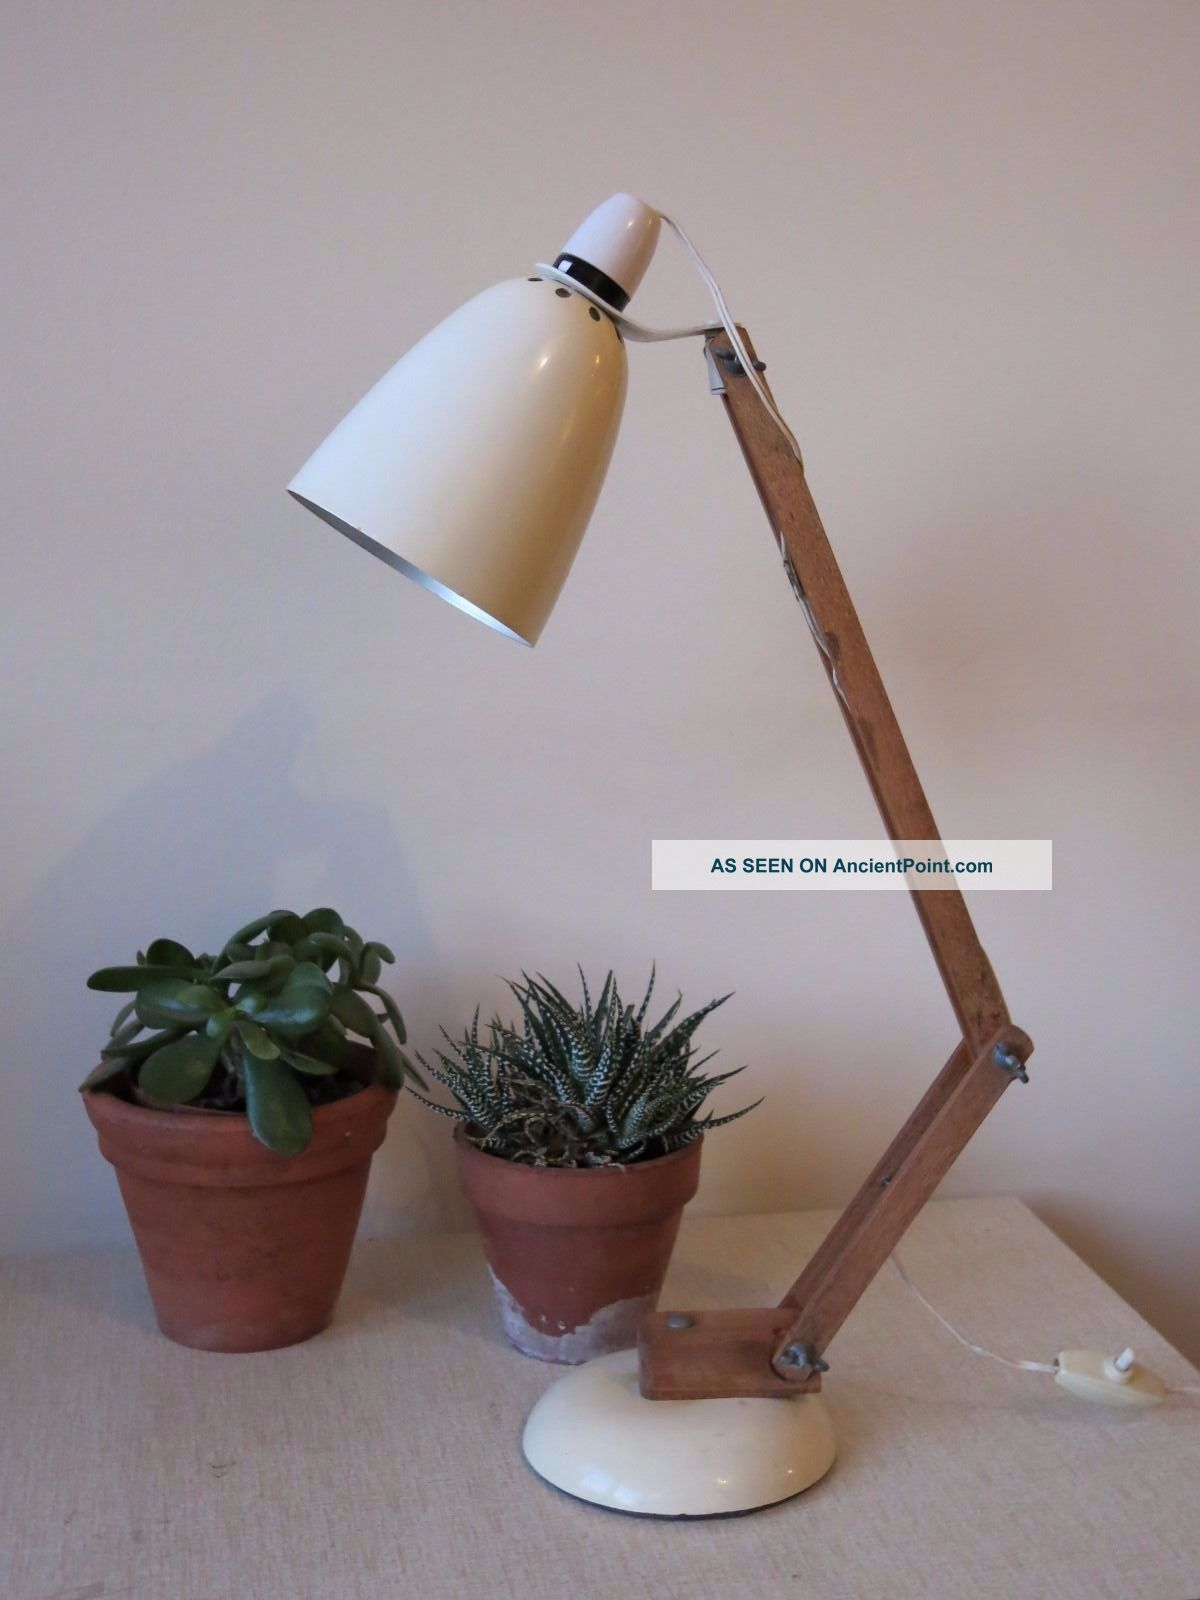 Vintage White Conran Maclamp 20th Century Desk Lamp With Wooden Arms 20th Century photo